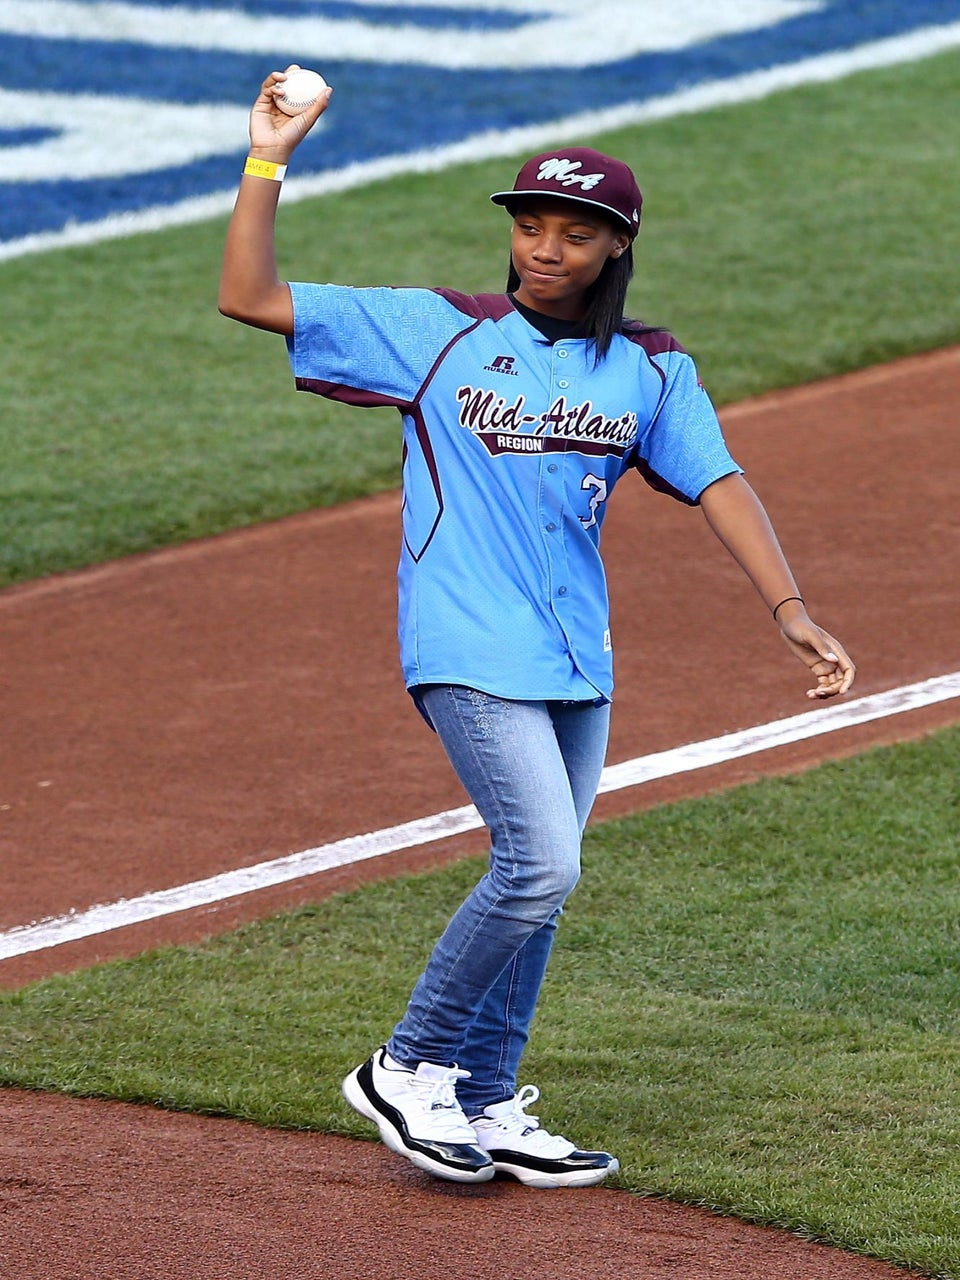 Must-See: Mo'ne Davis Throws First Pitch At World Series